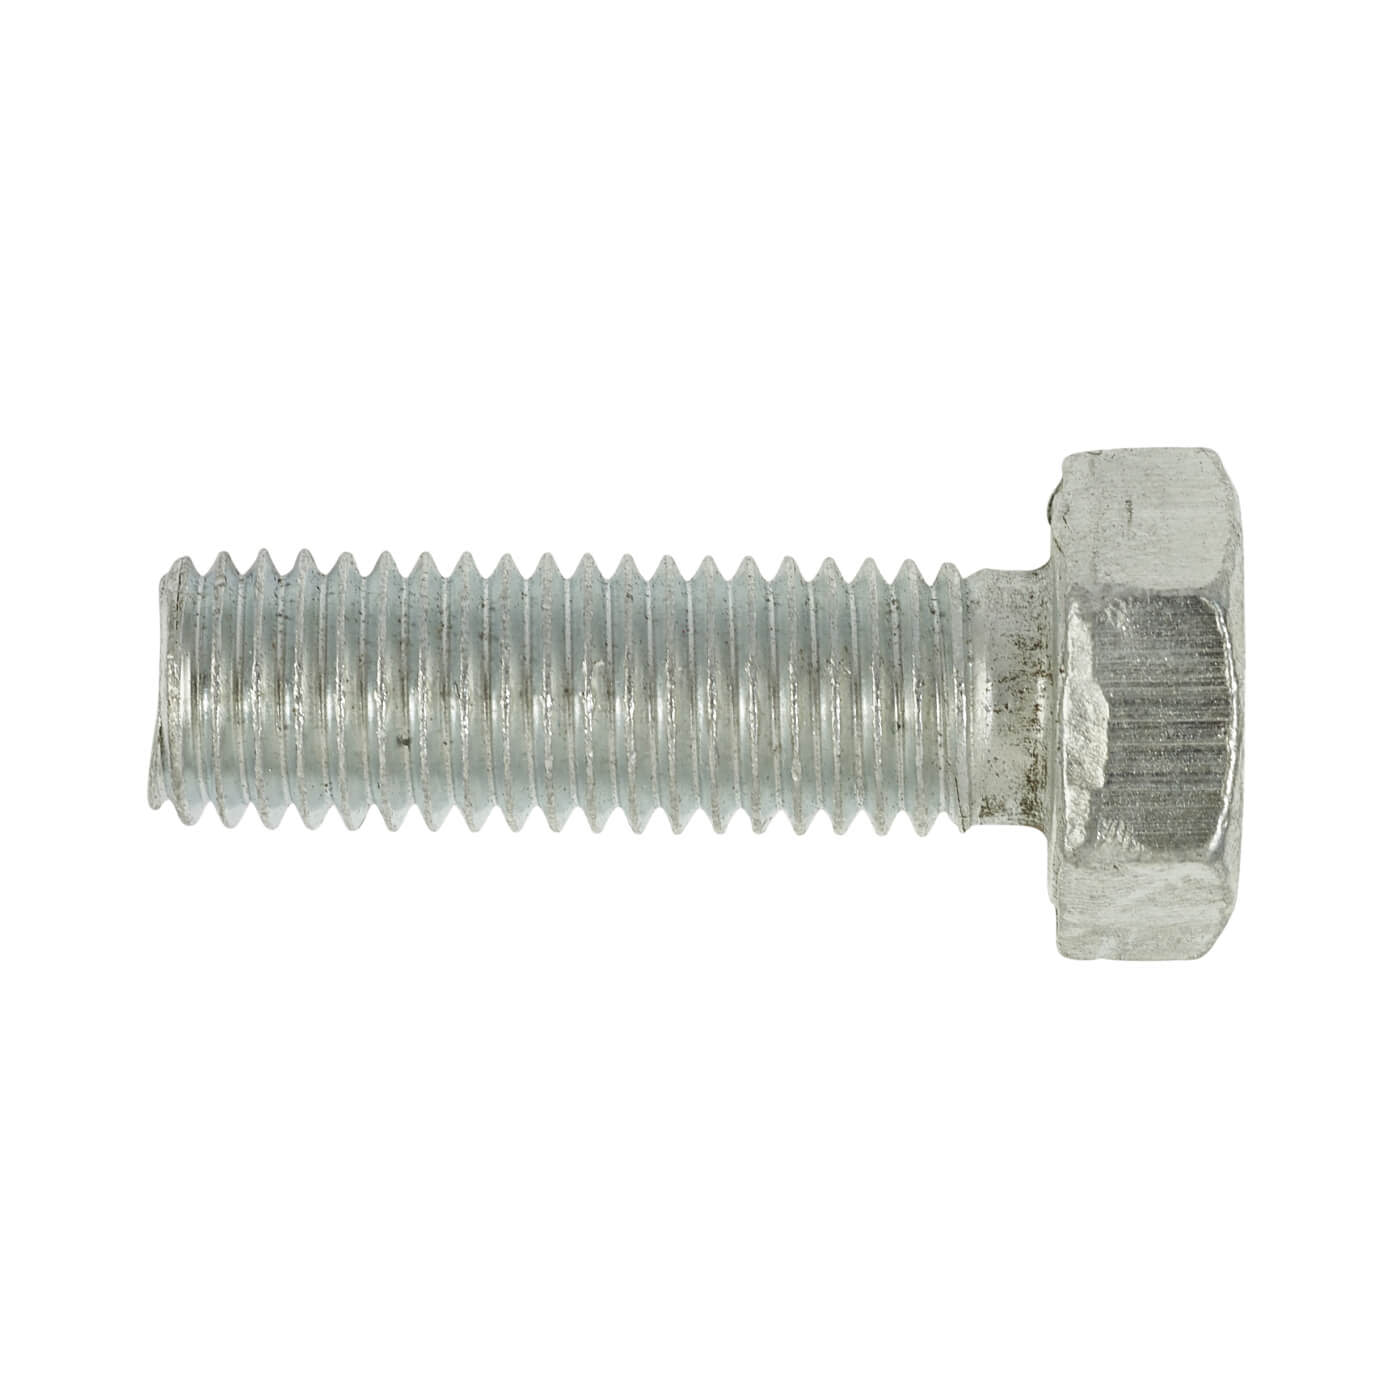 Driving Bolt for Copper Earth Rod - 5/8 Inch)